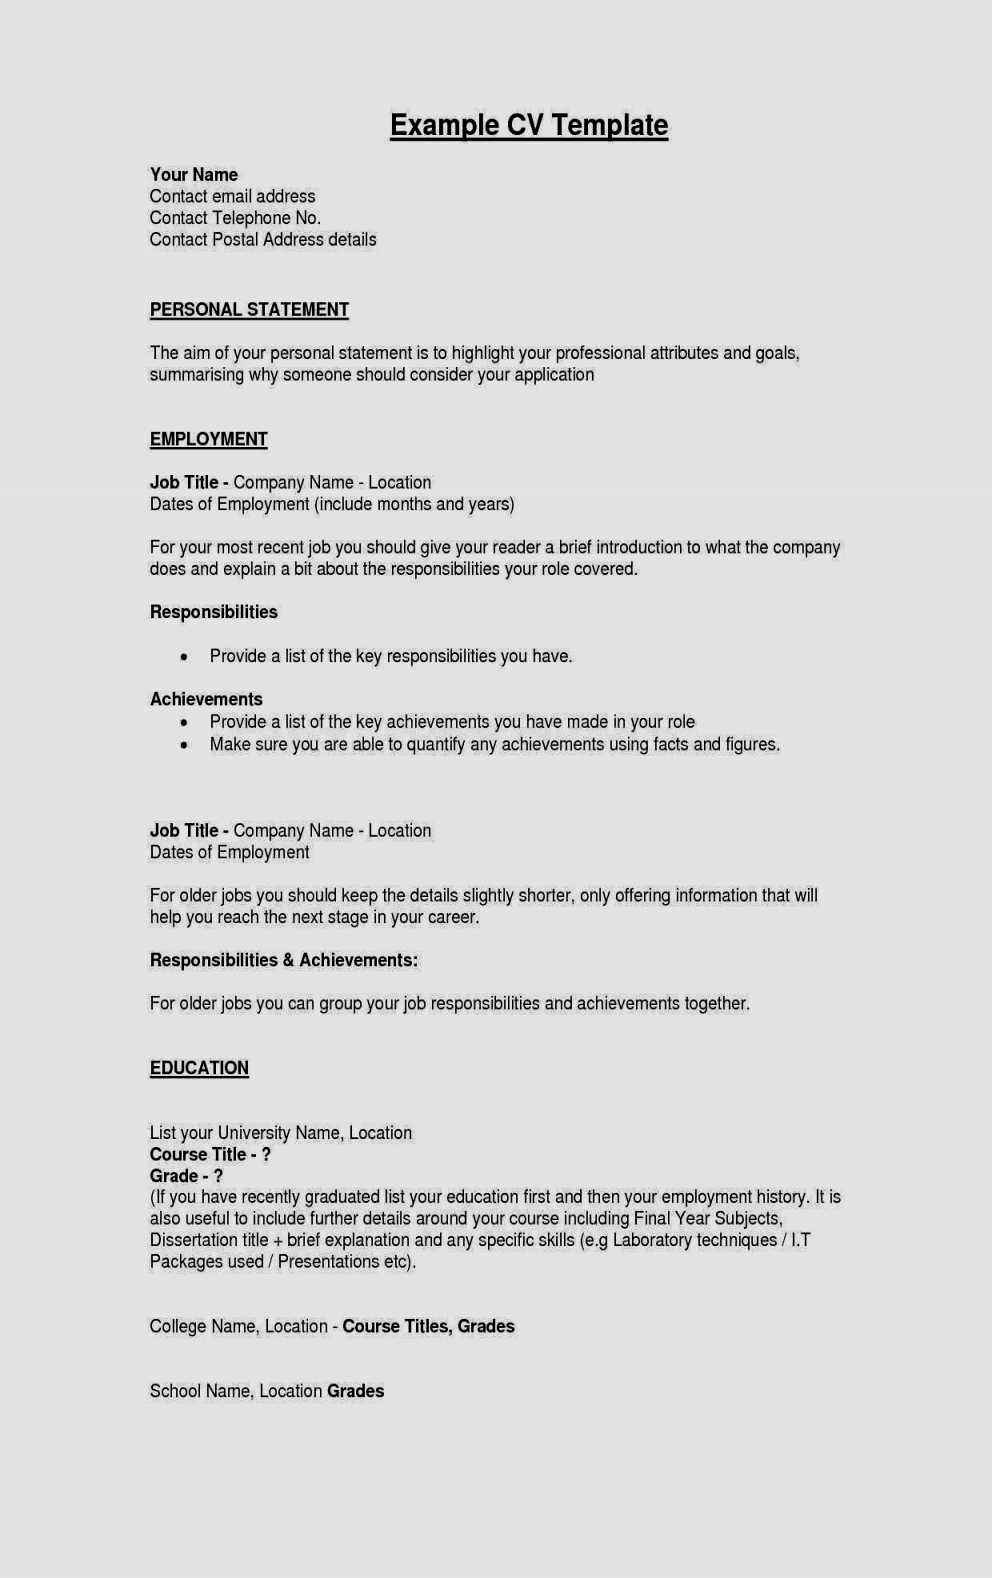 Writing A Cover Letter for A Resume - How to Make Cover Letter Journalism Example Free Resume Templates